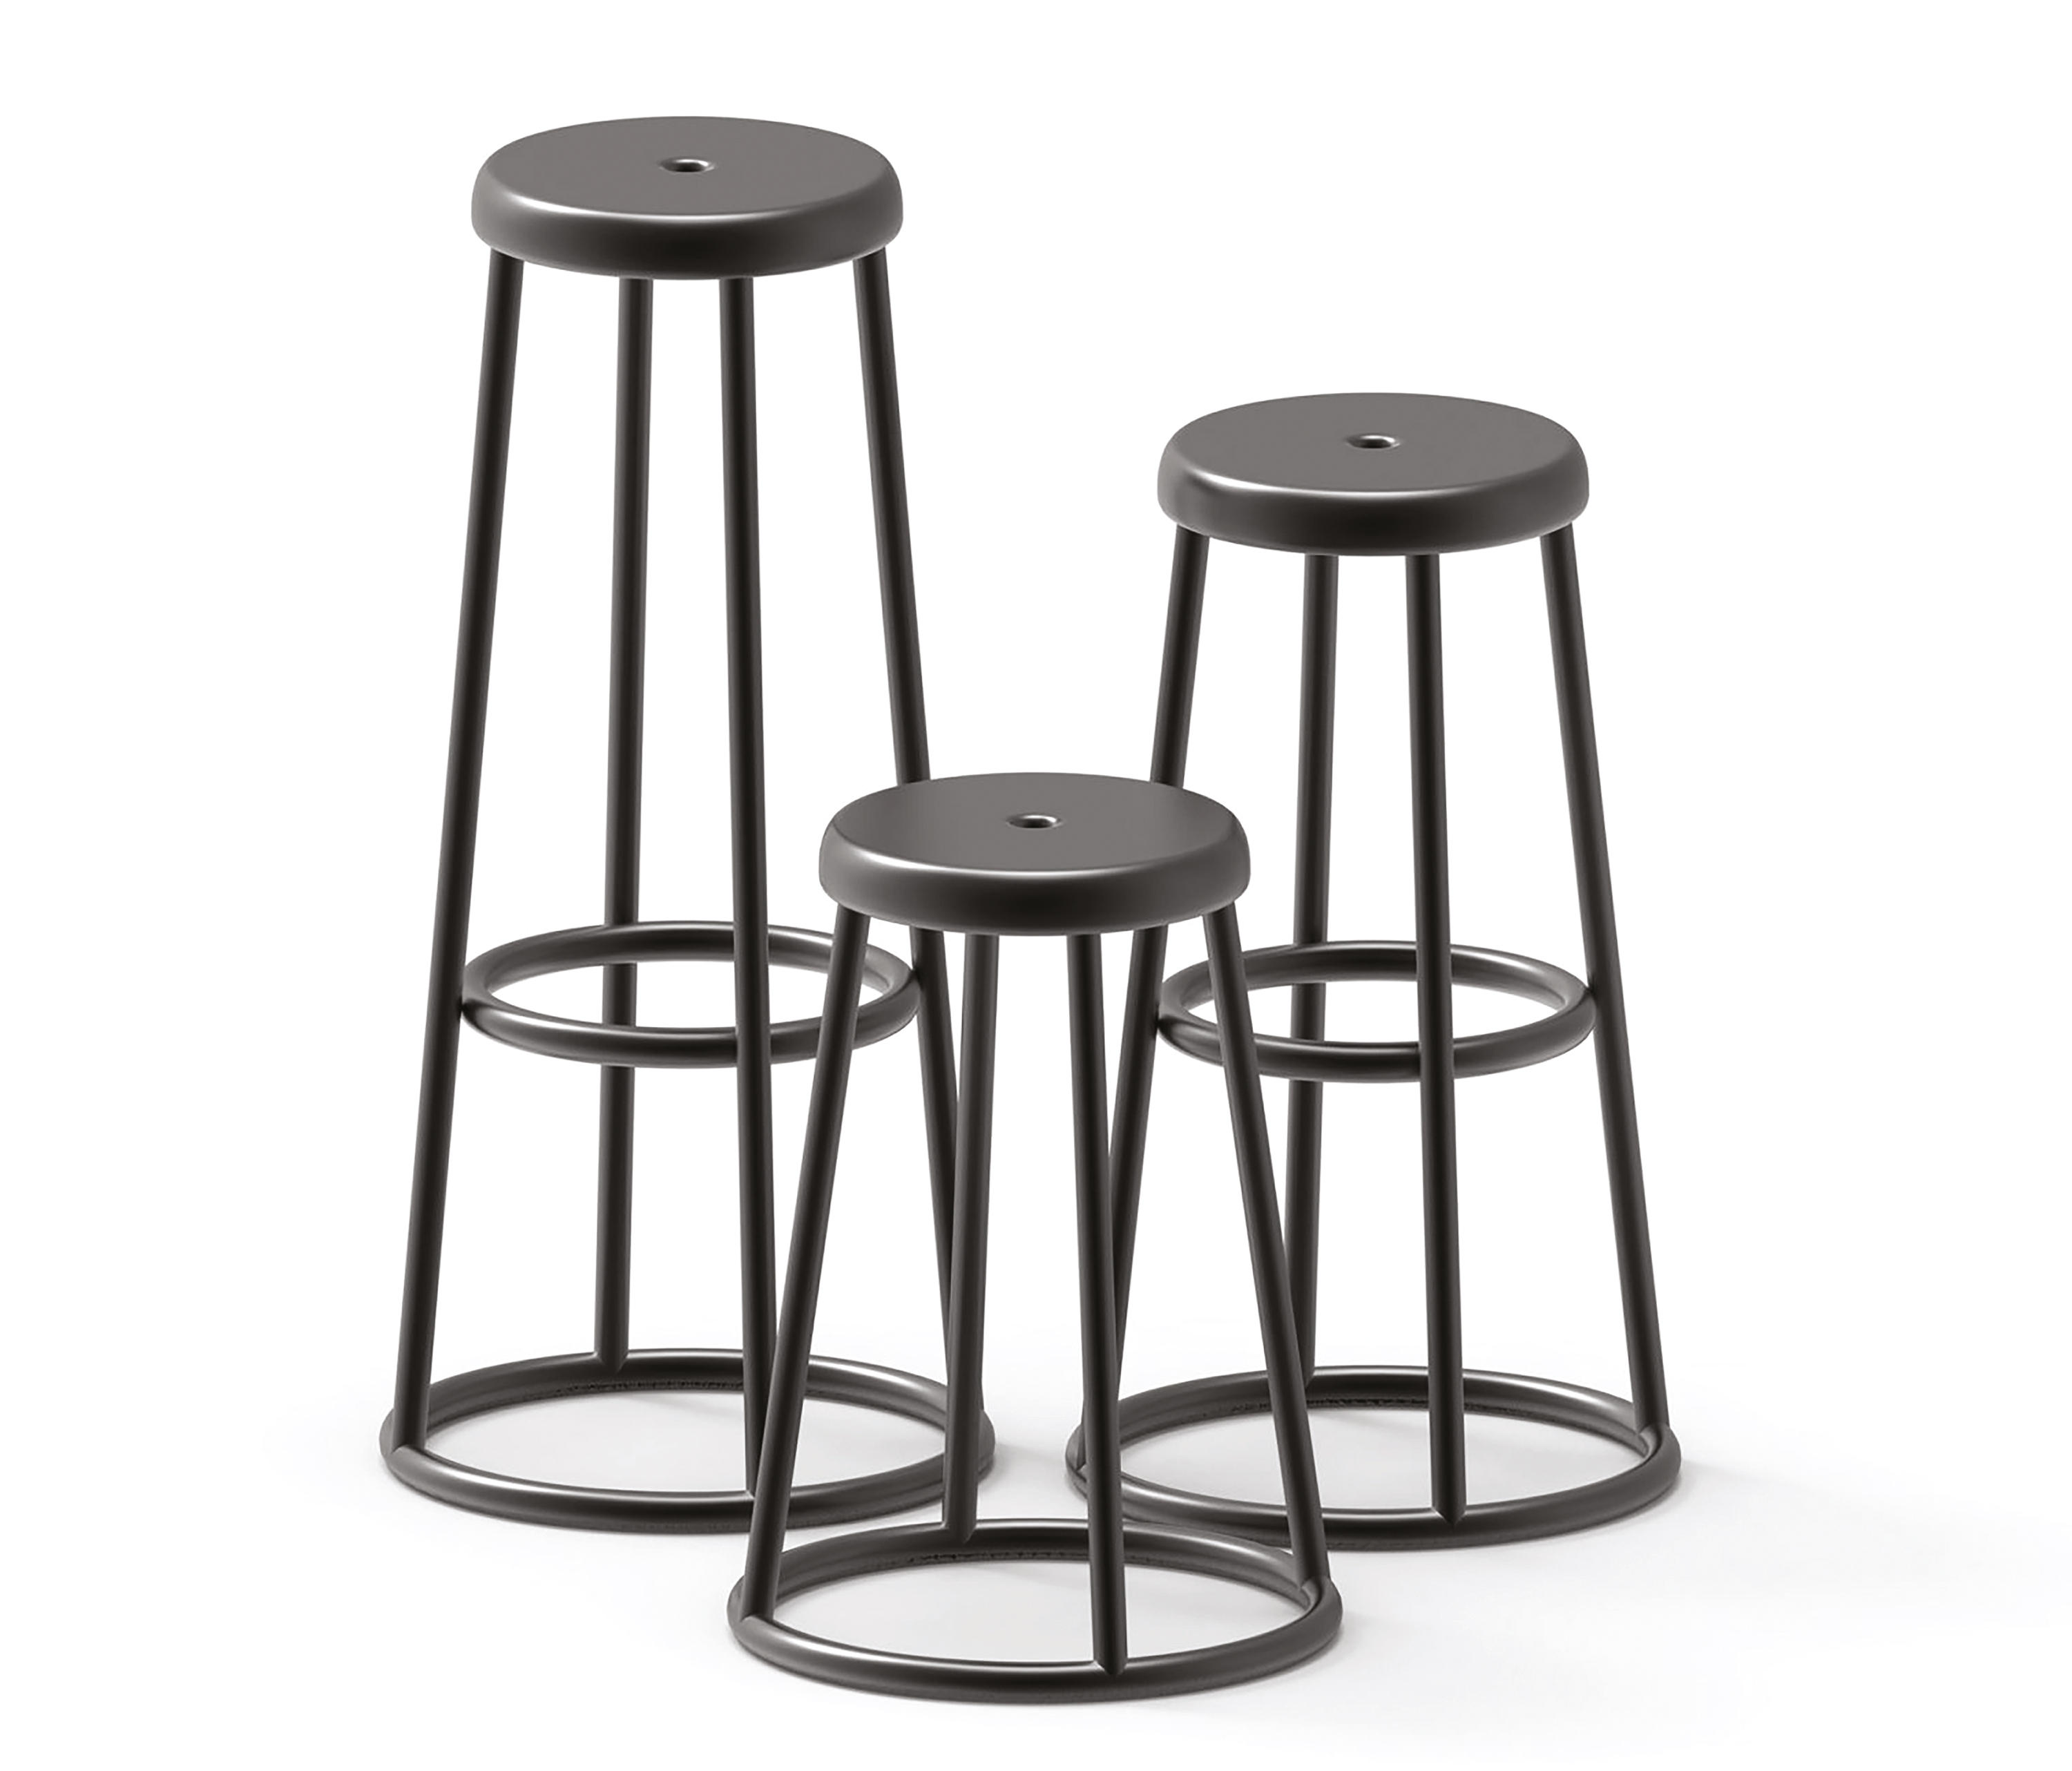 Industrial Stool Stools From Zeus Architonic